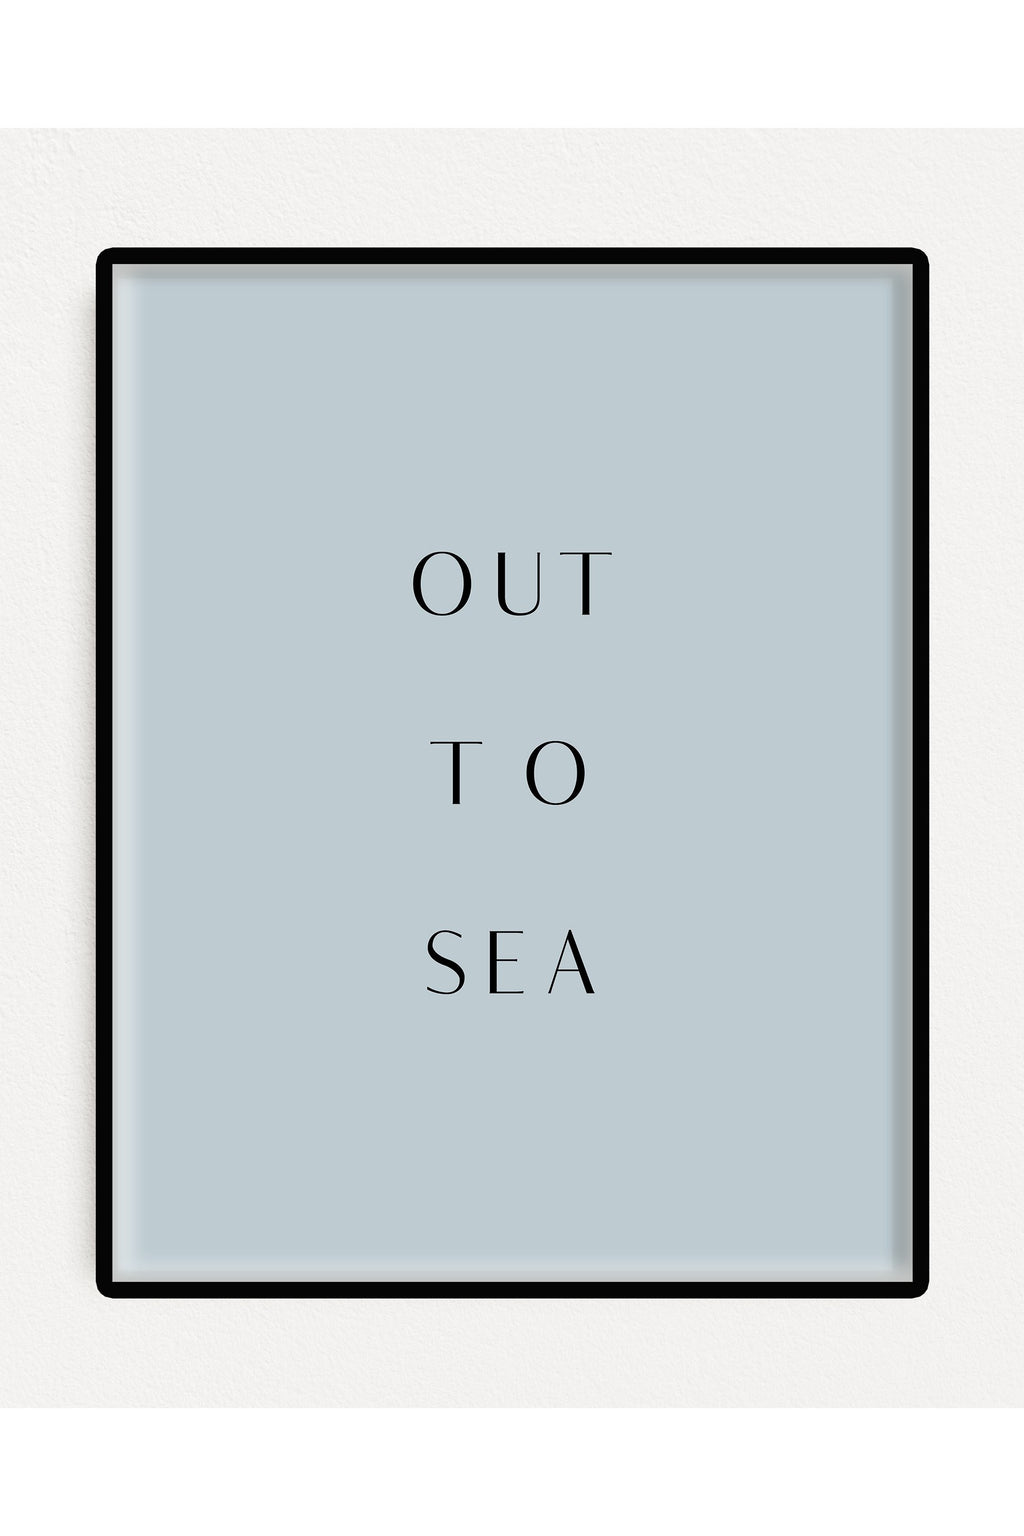 Out to Sea Art Print Poster Poster - Hausofassembly